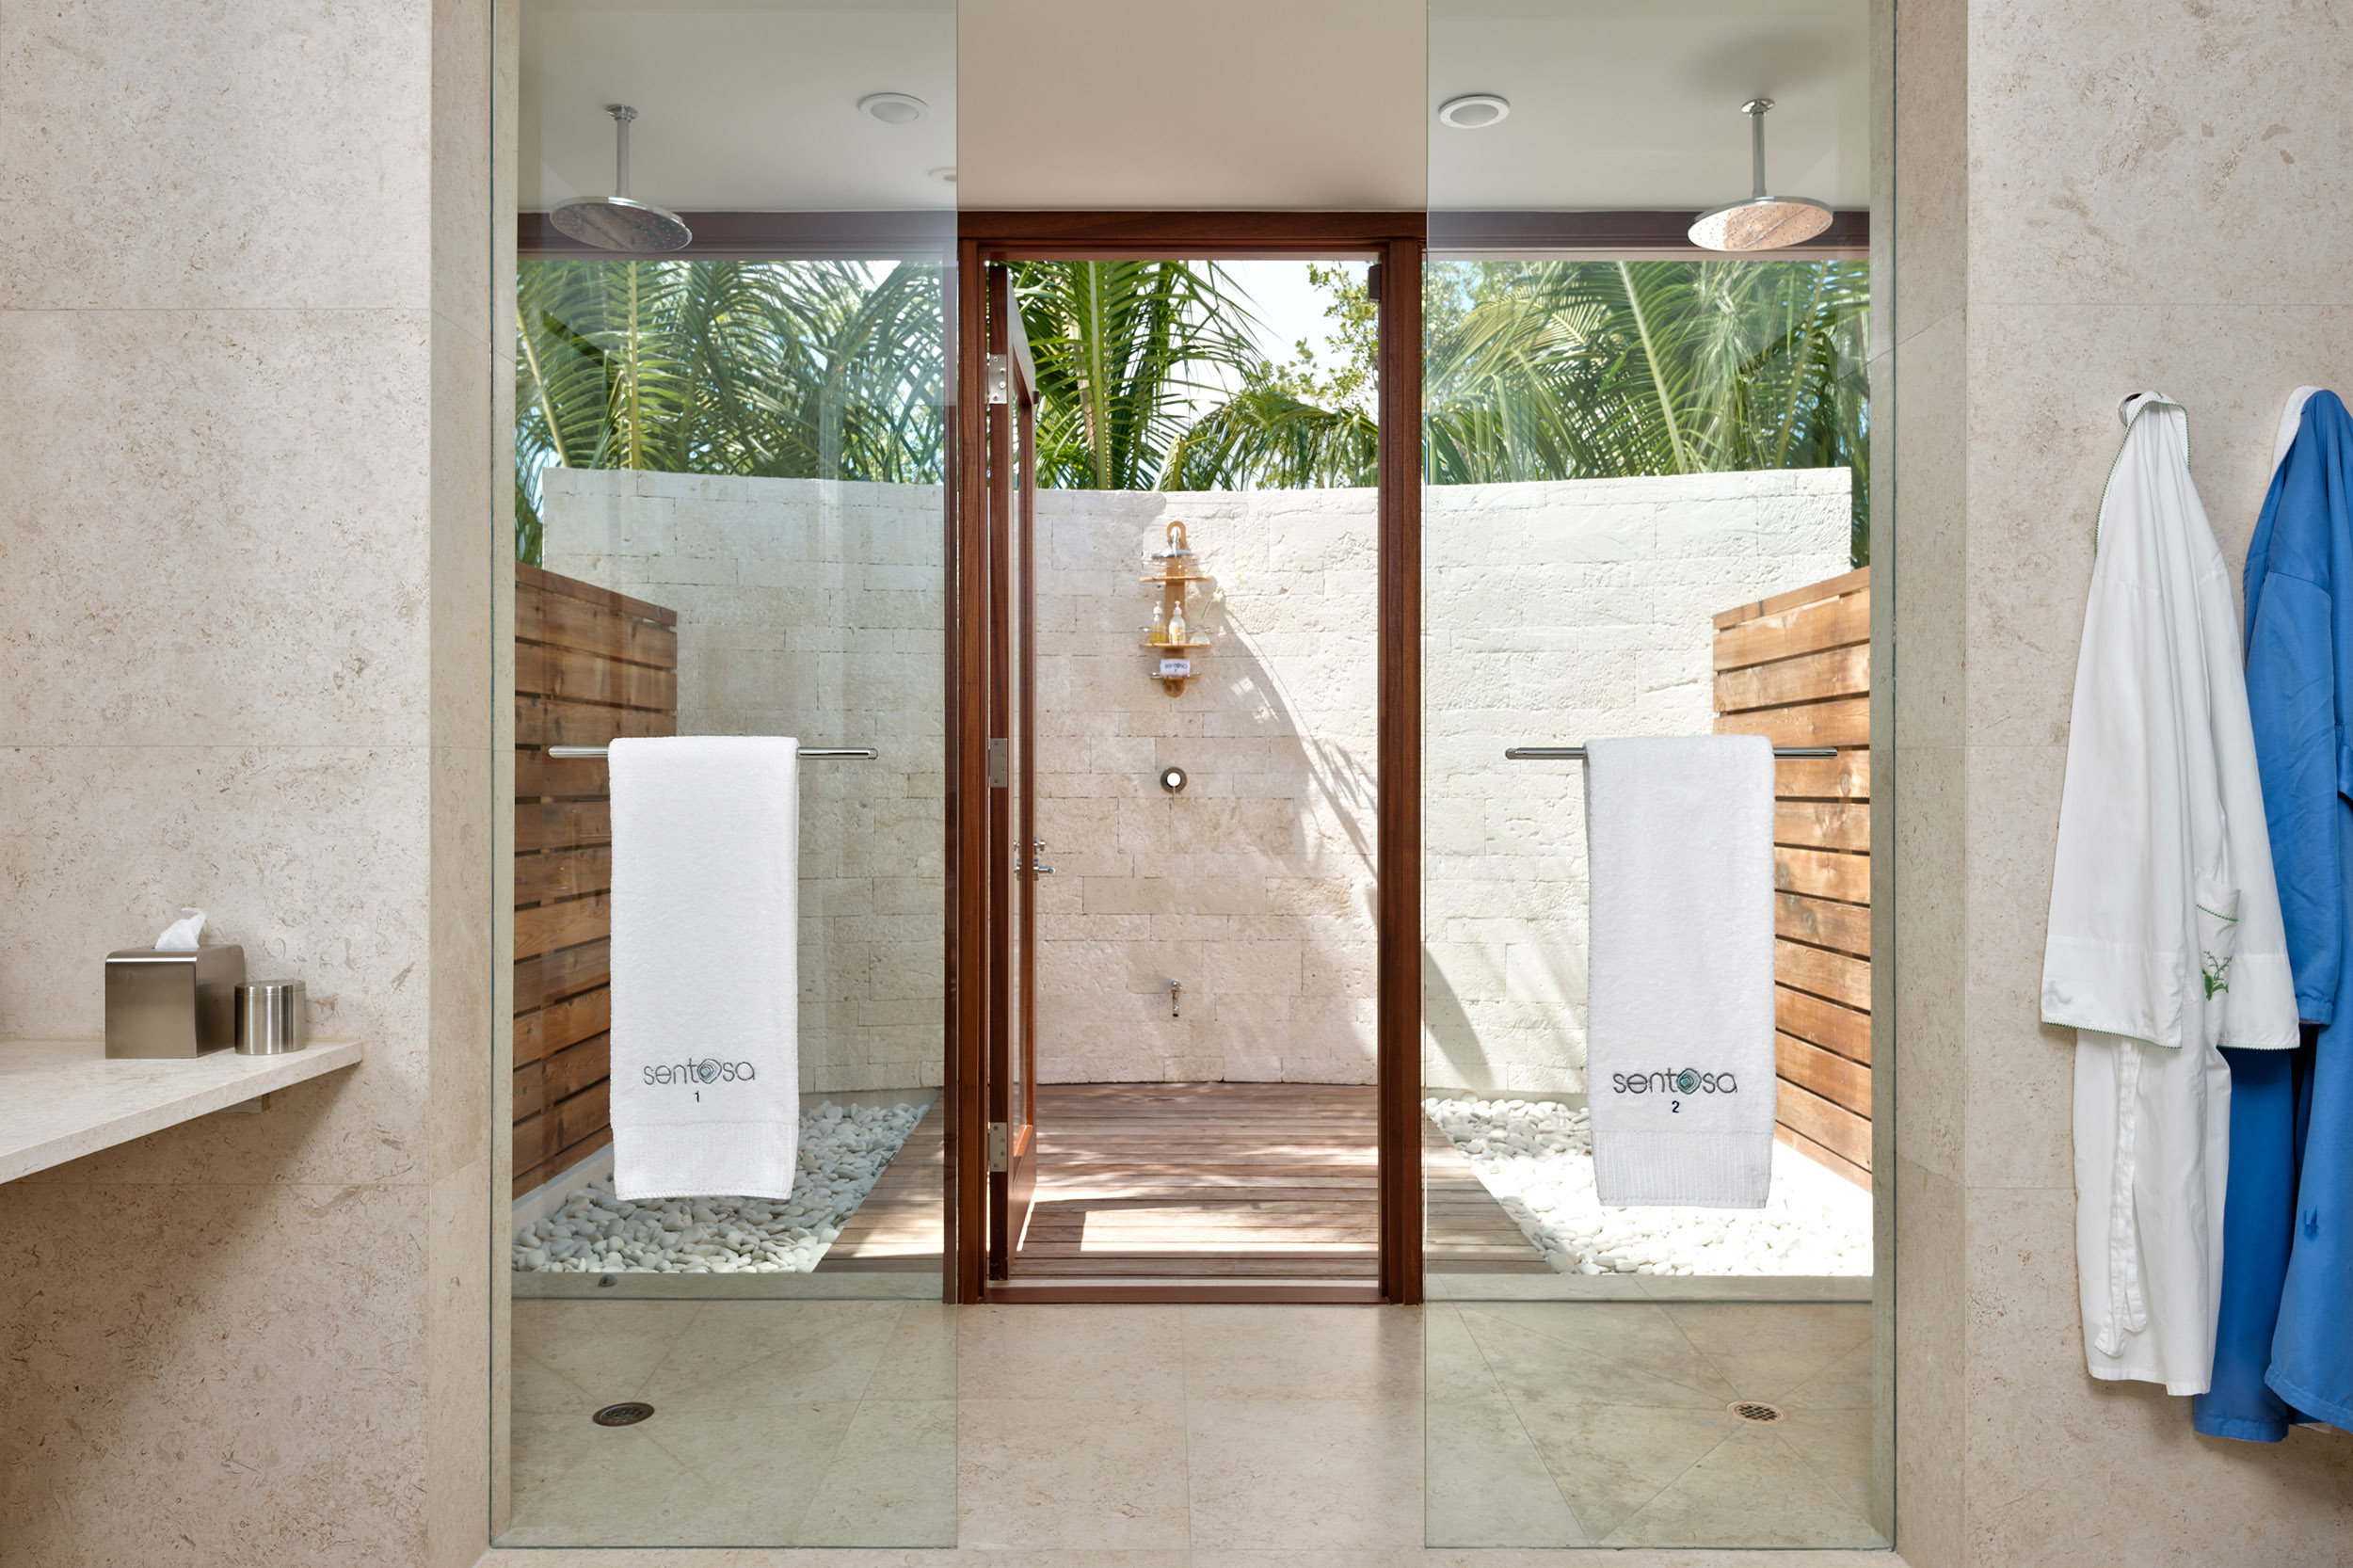 Sentosa - view showing an outdoor shower area